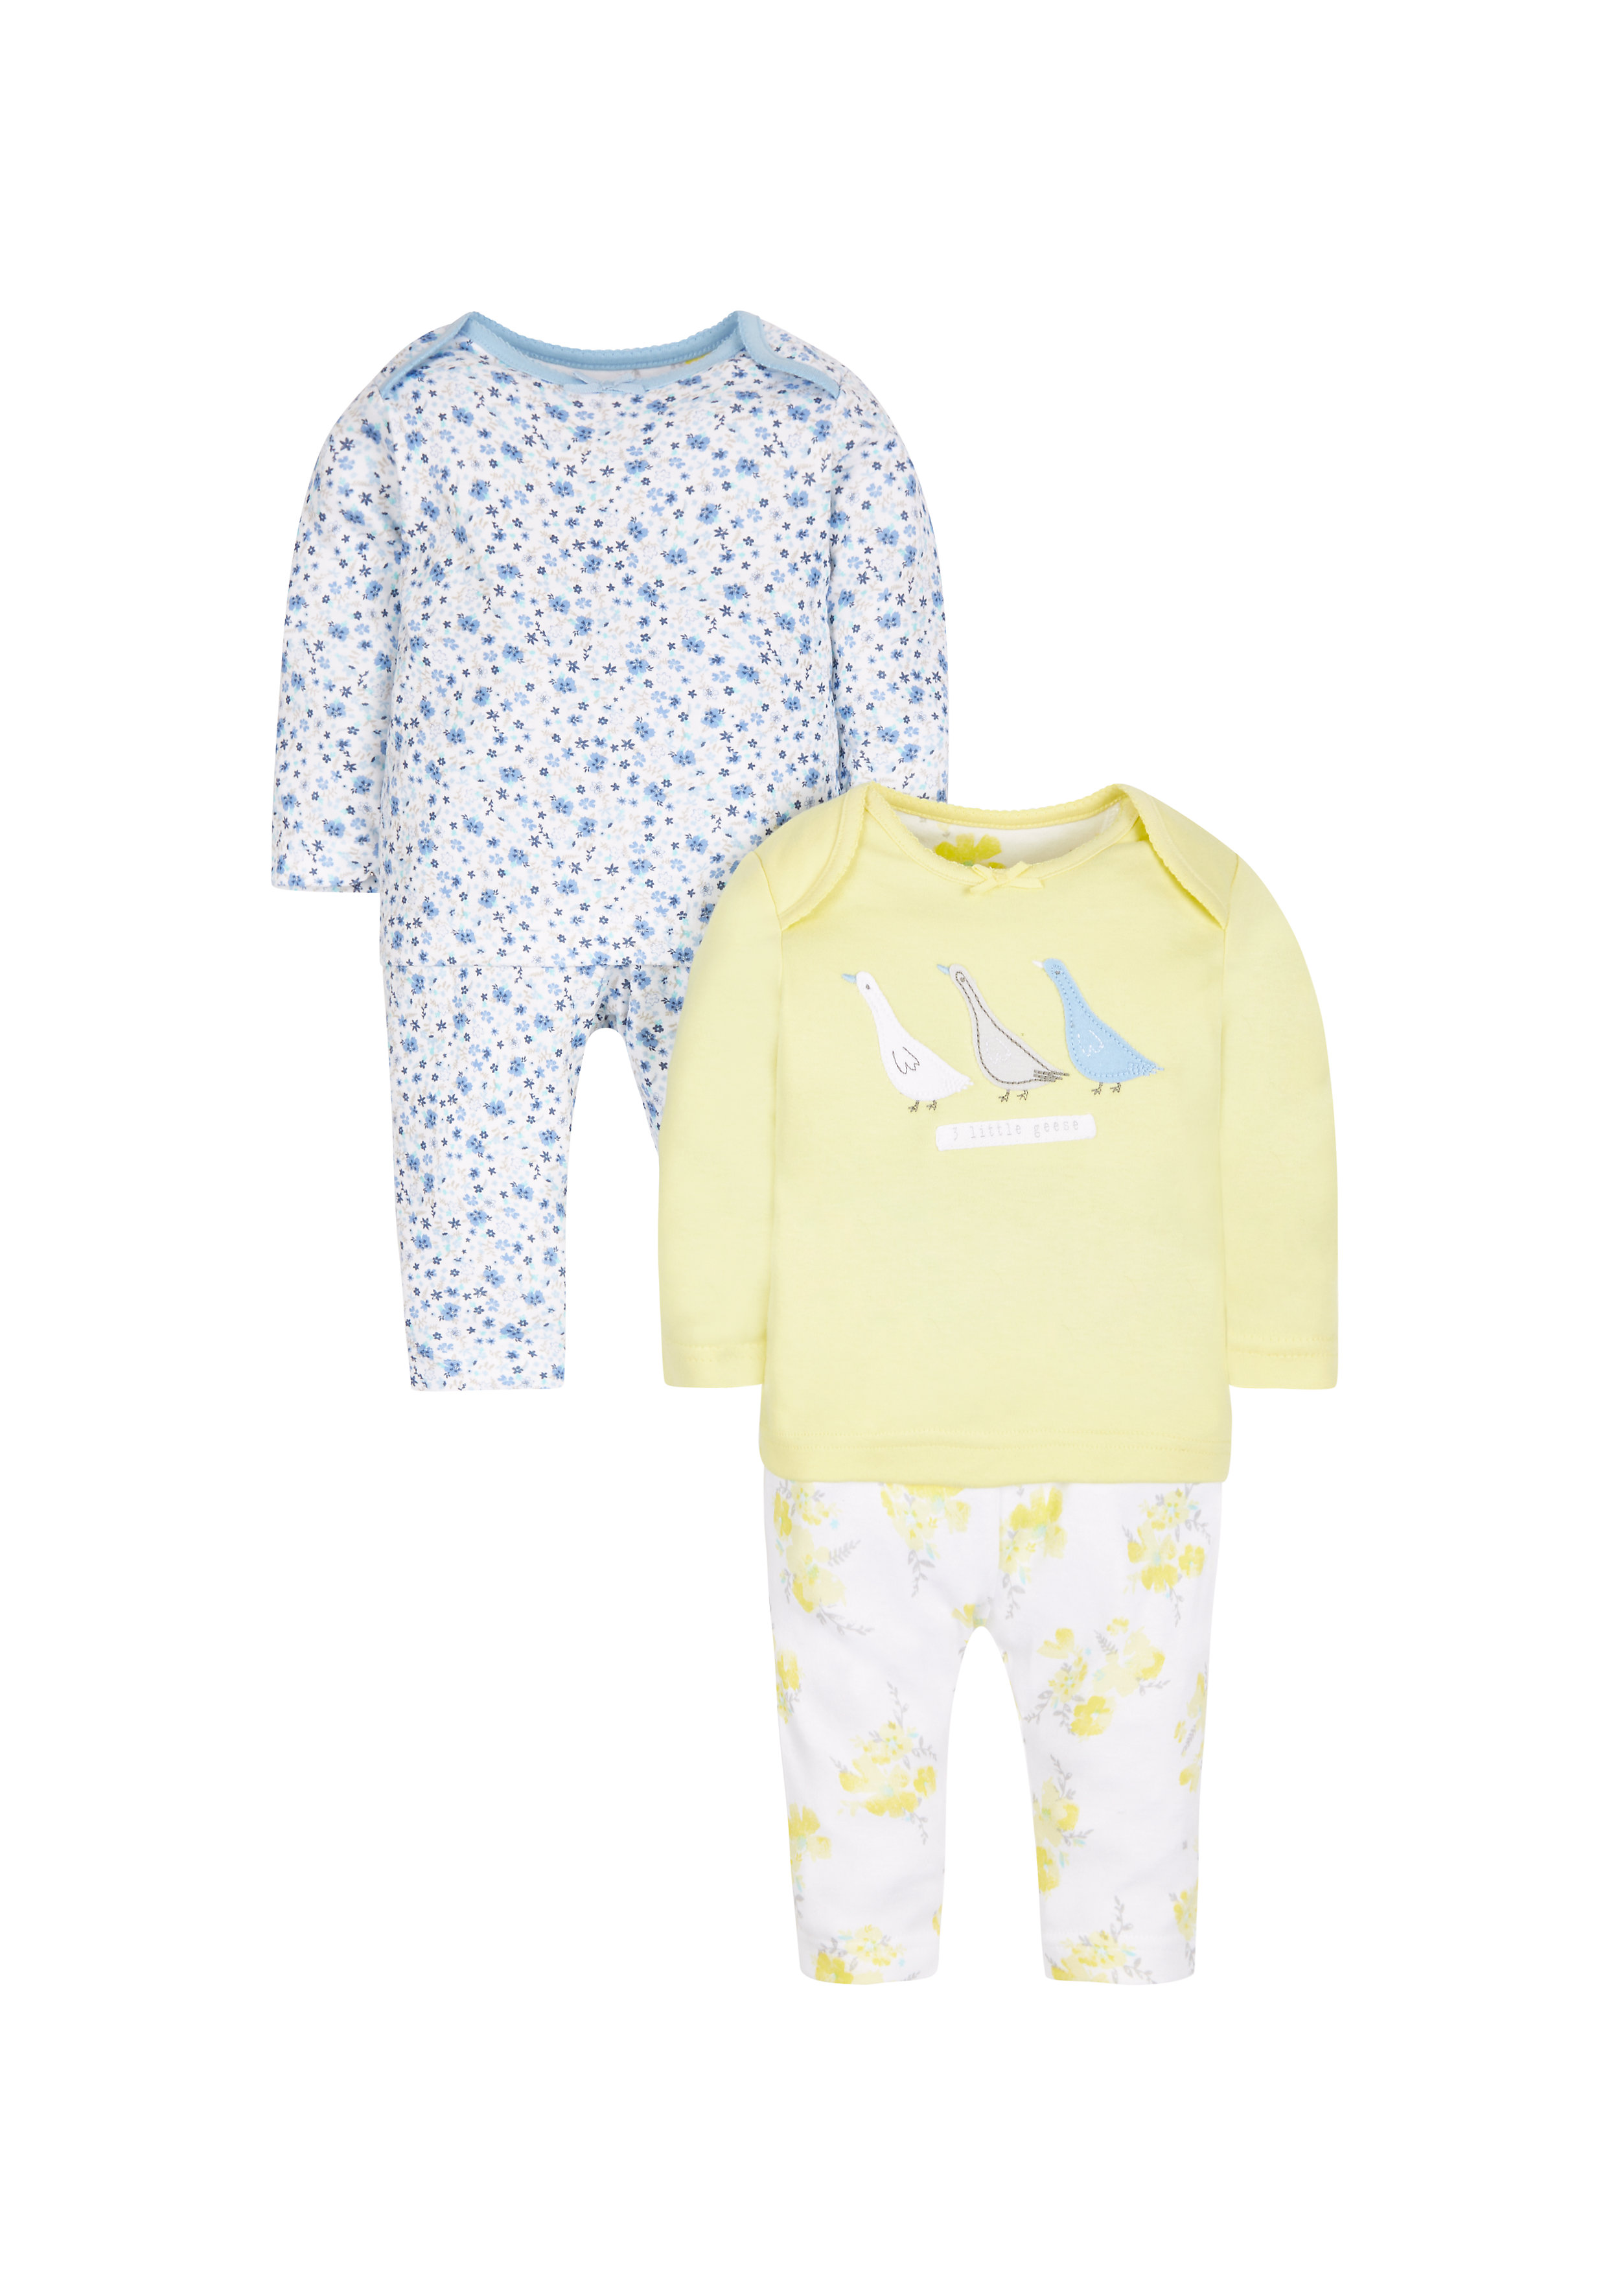 Mothercare   Girls Full Sleeves Floral Print Pyjamas - Pack Of 2 - Yellow Blue